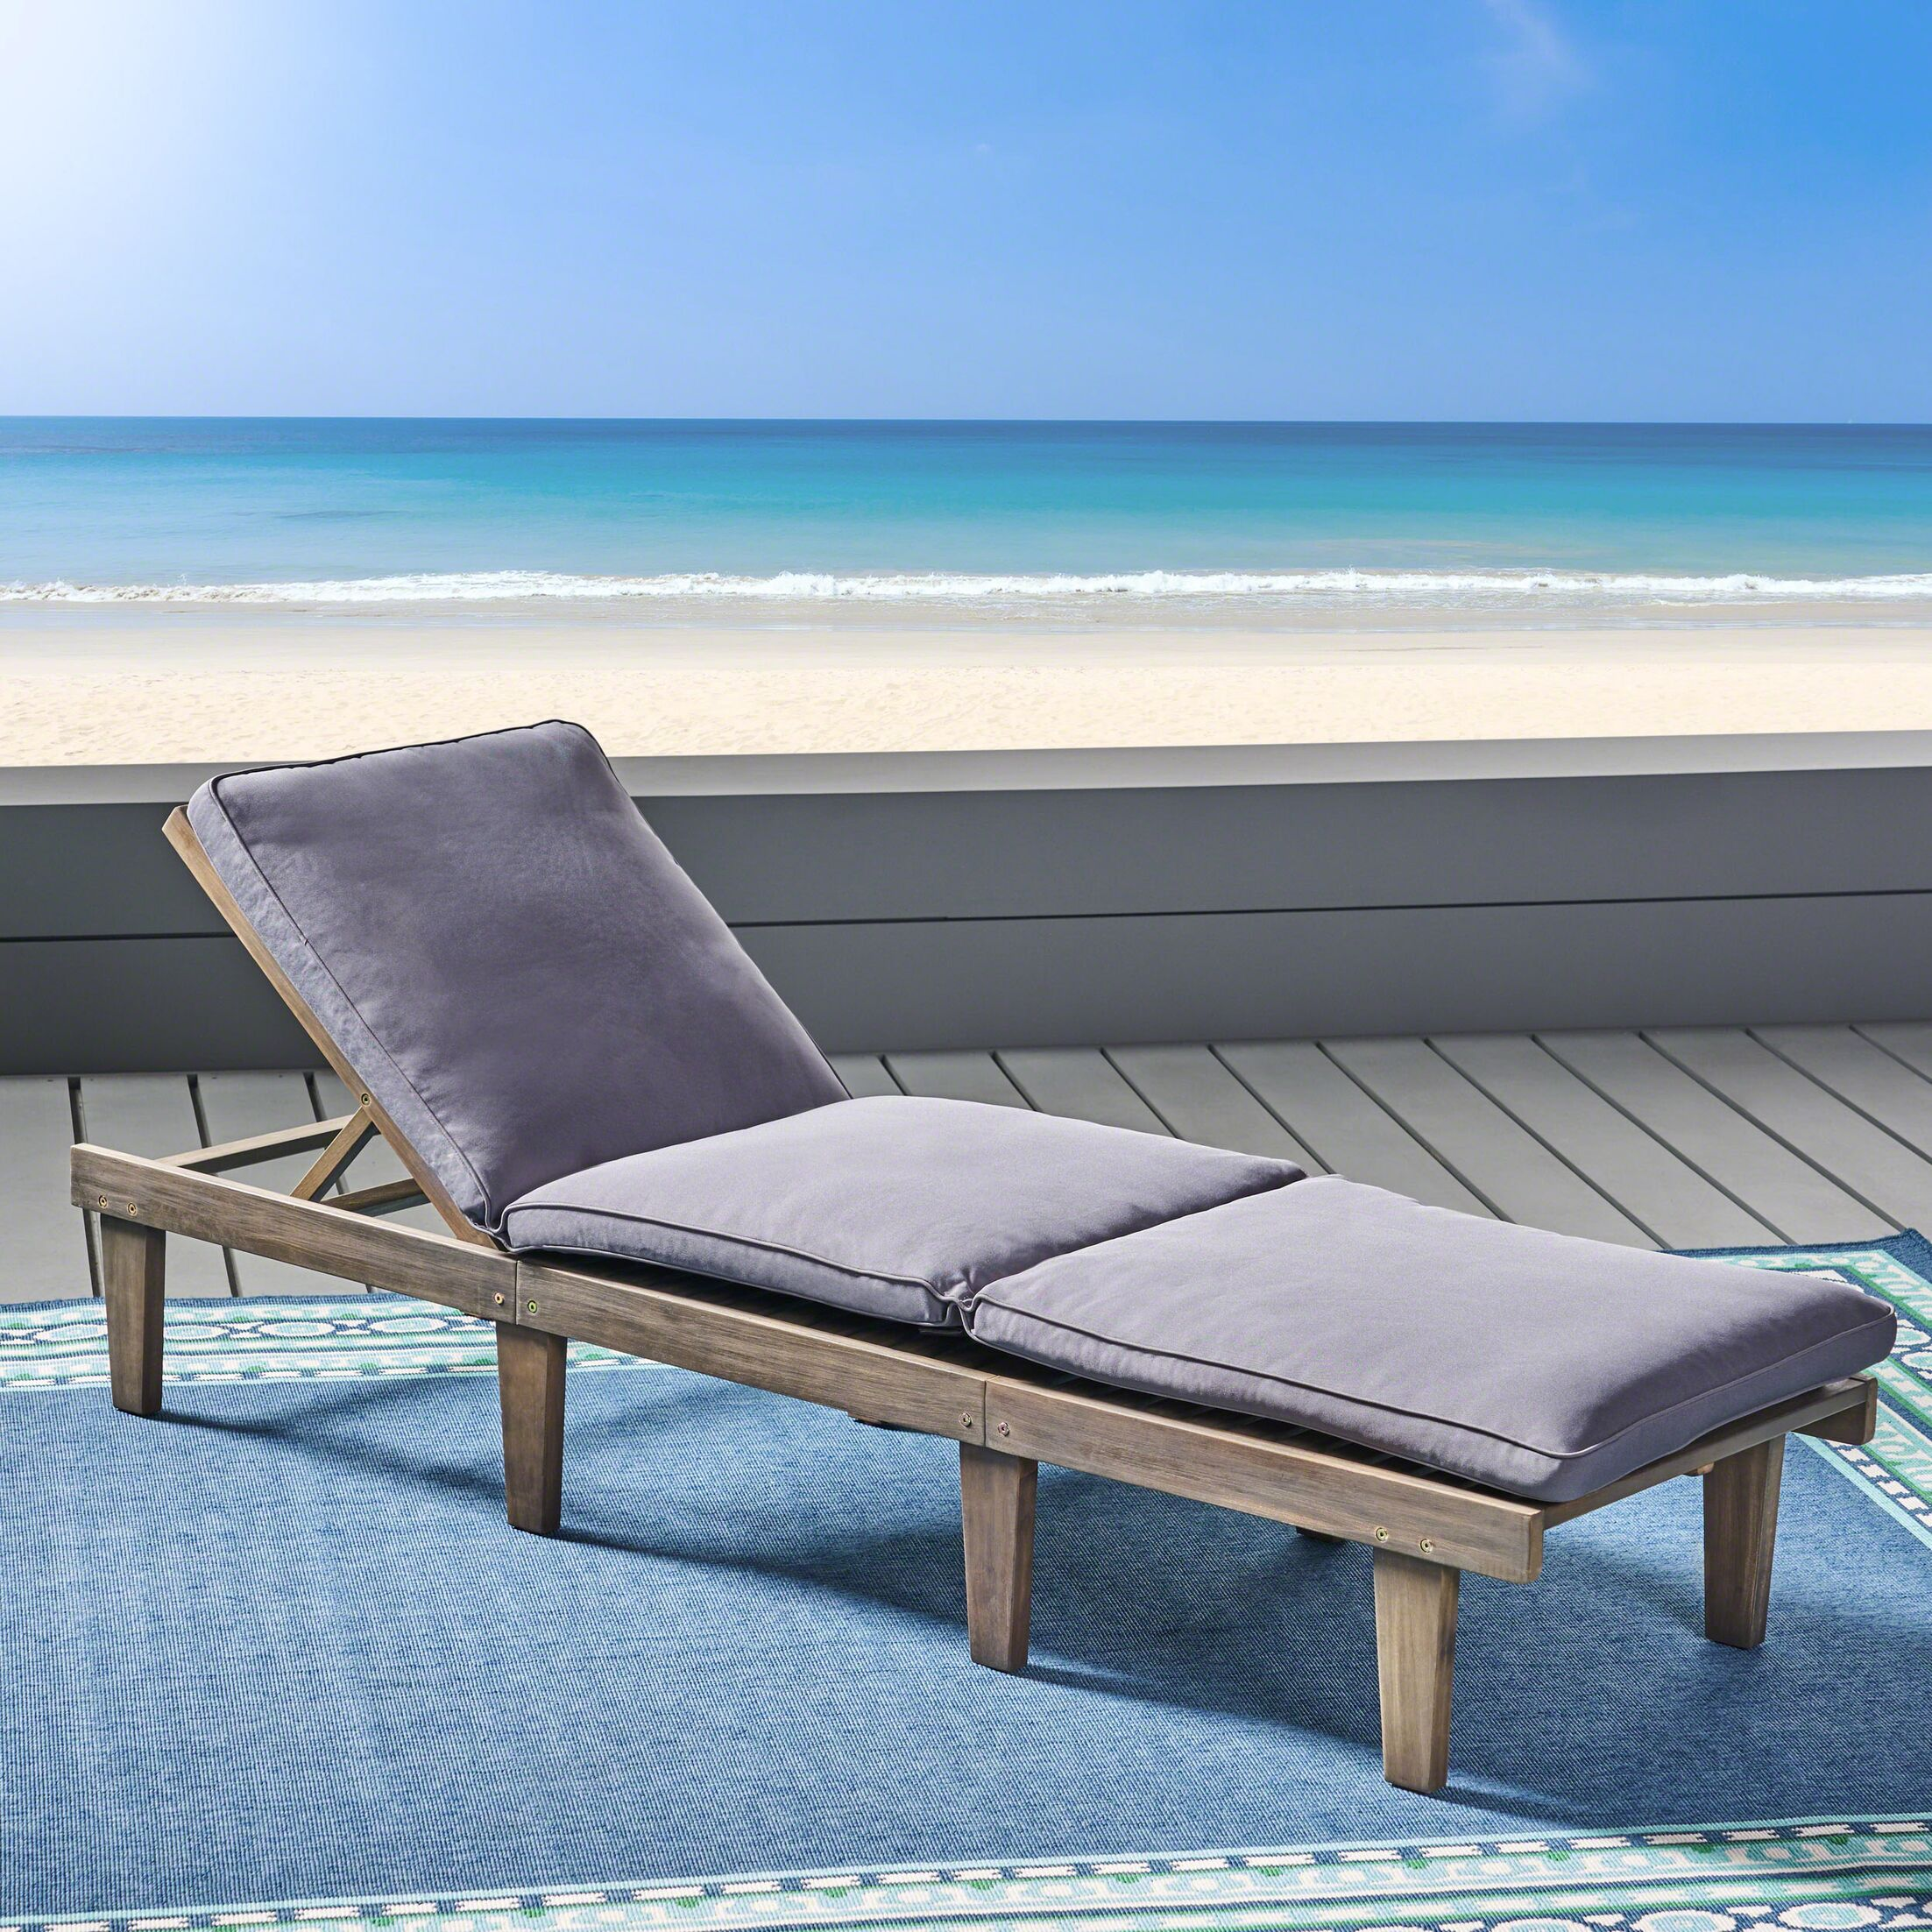 Poindexter Outdoor Chaise Lounge with Cushion